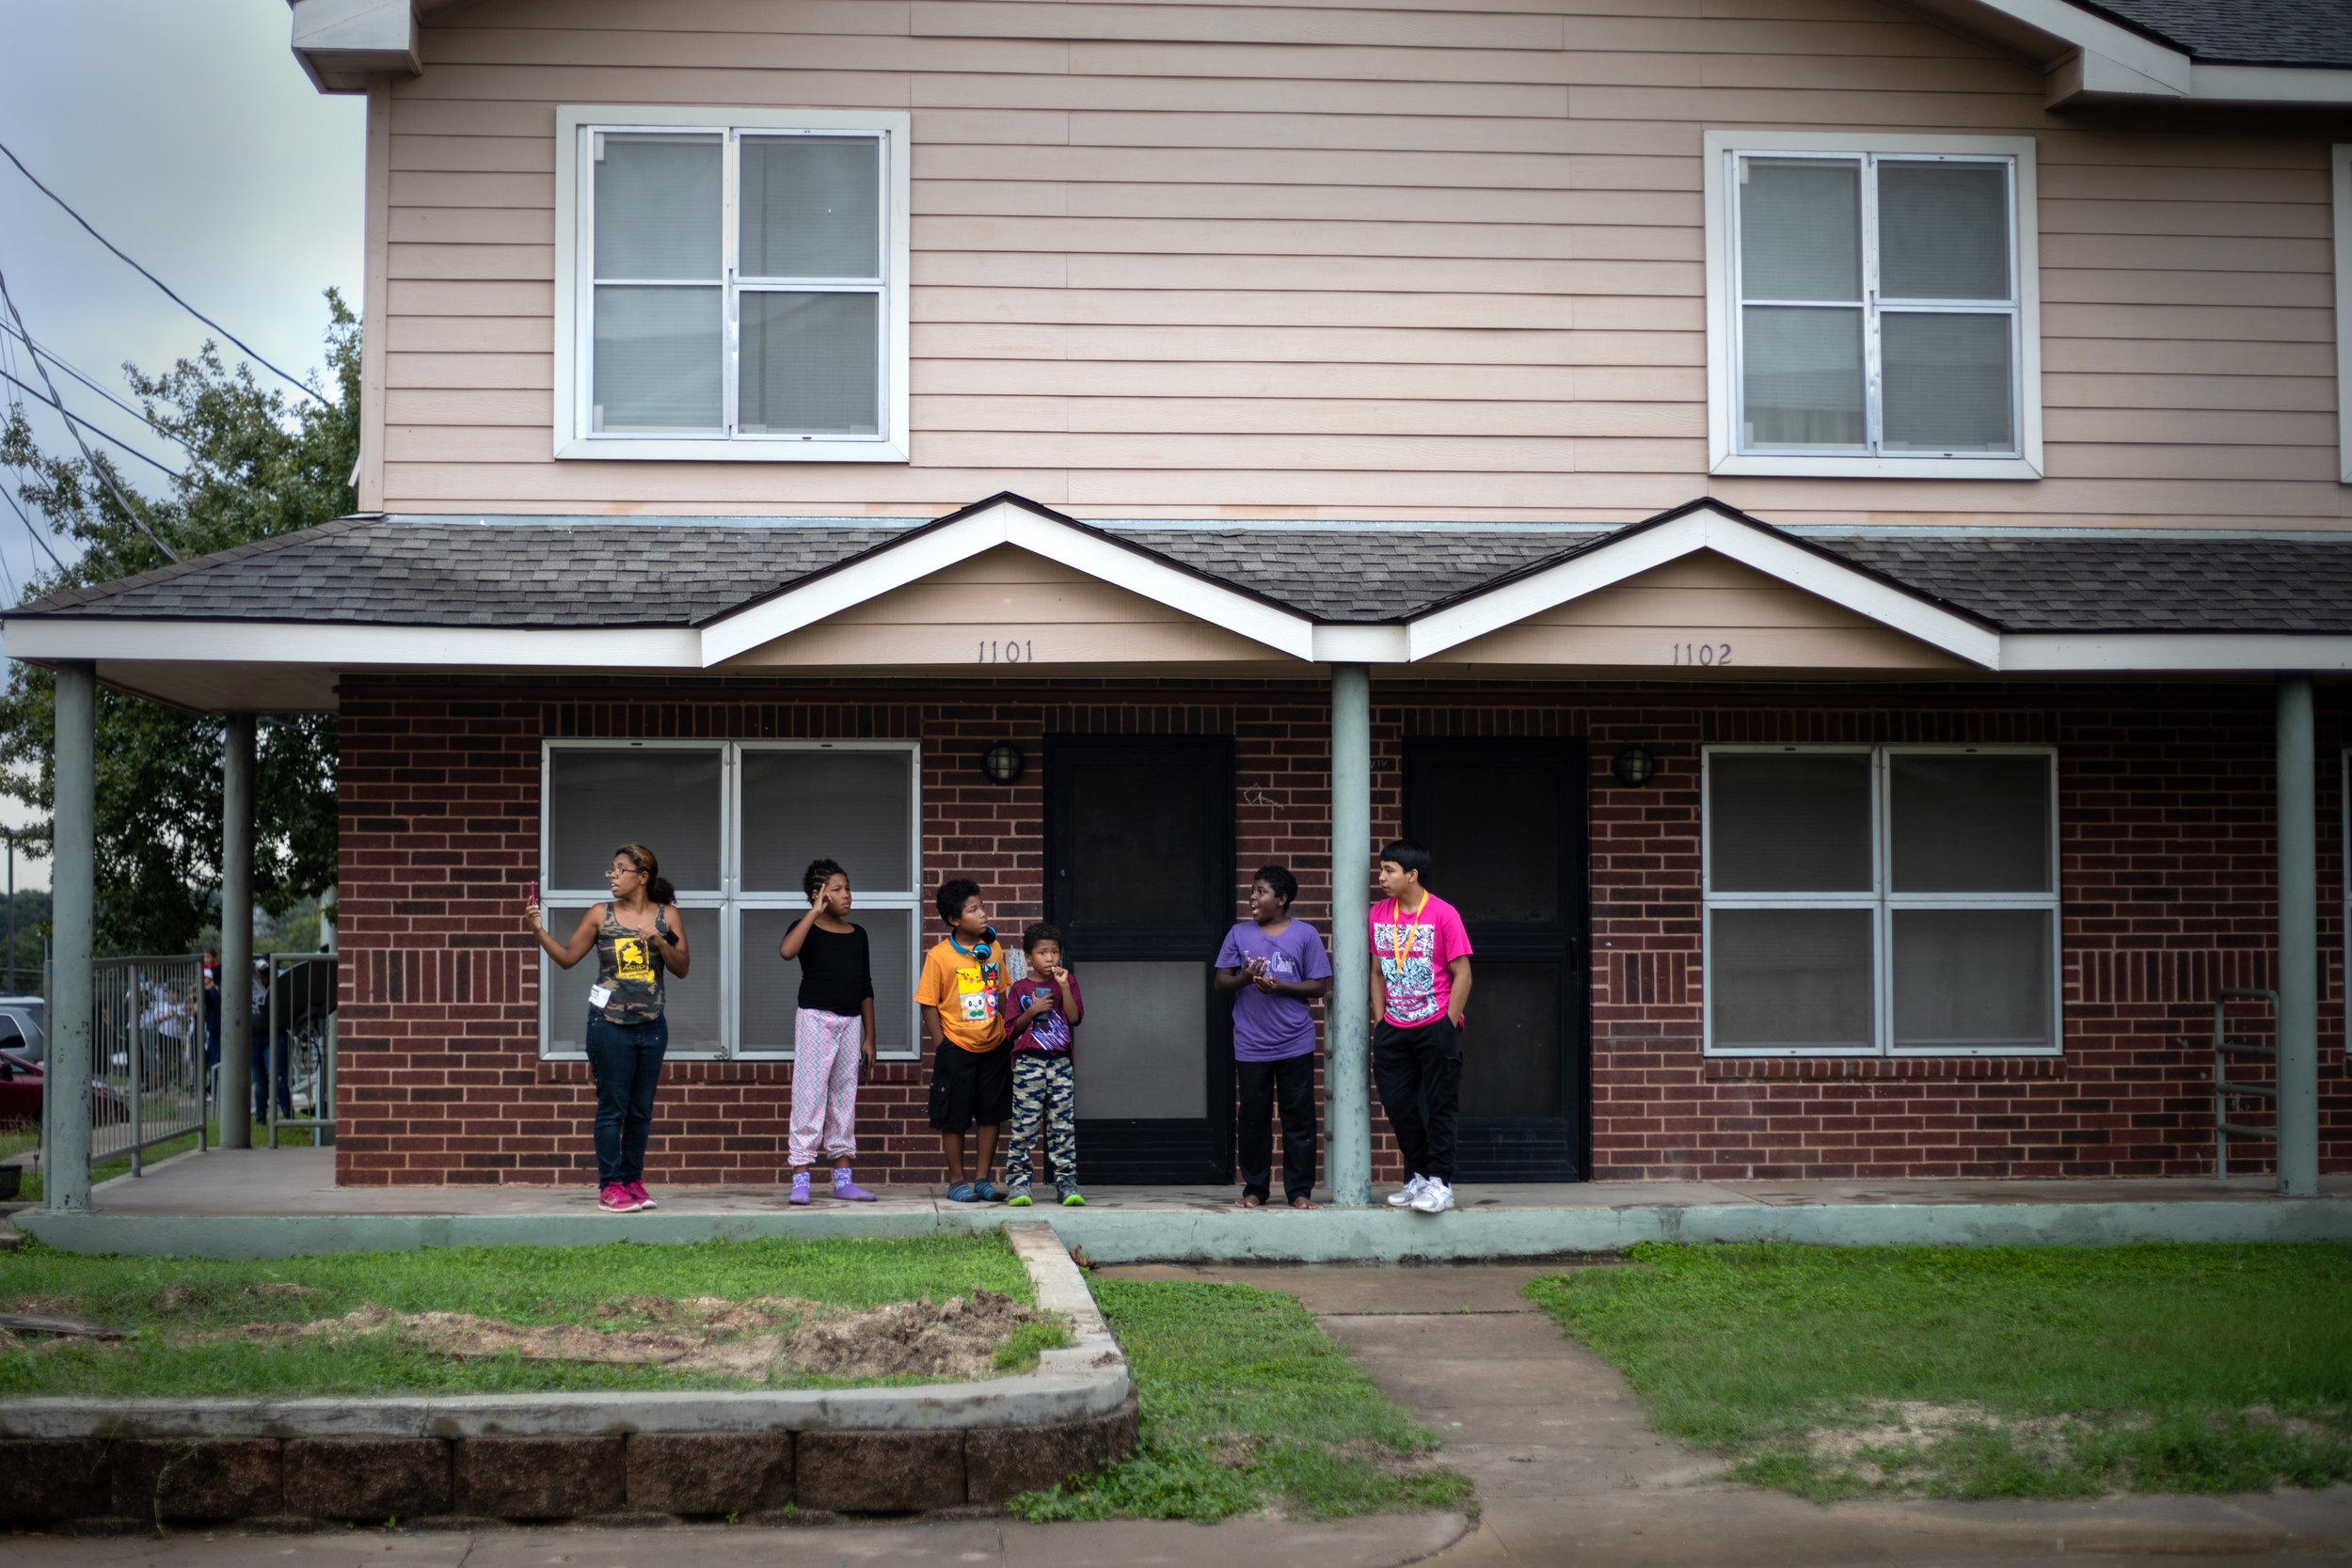 Tracie Moreno (left) and her children watch an Austin Police Department SWAT team response to Booker T. Washington Terrace apartments on Oct. 19, 2018.